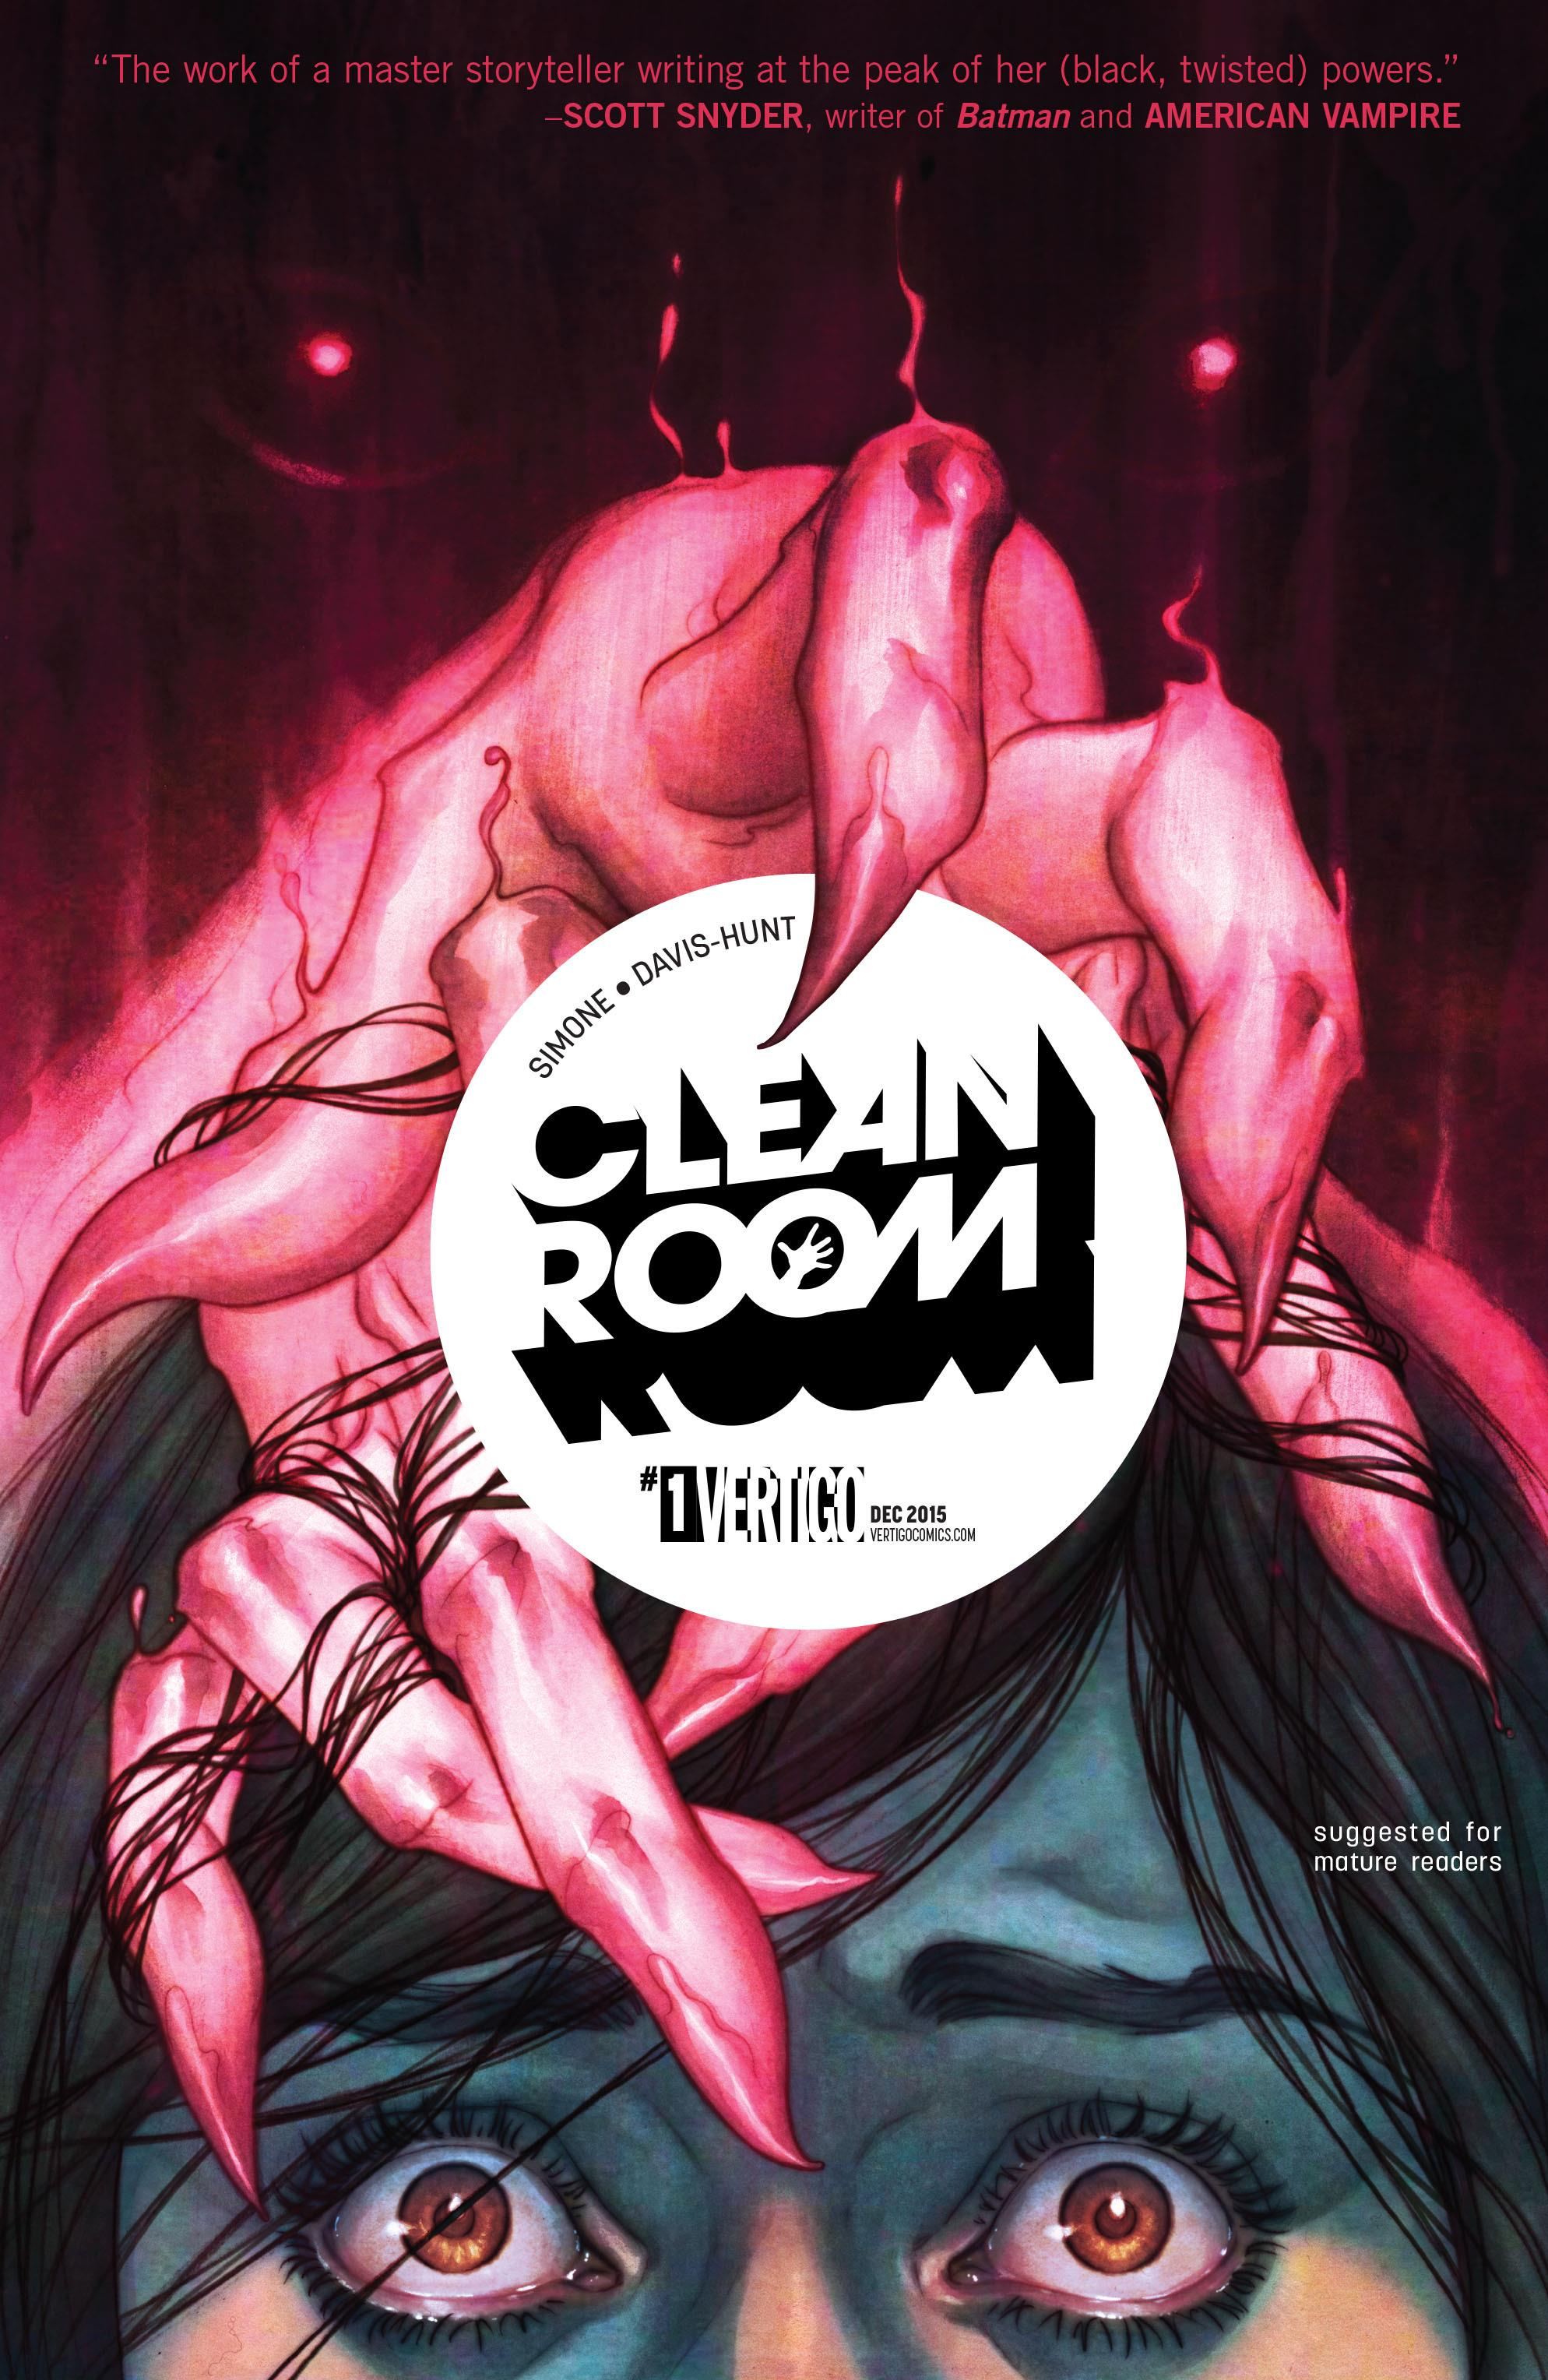 COMIC REVIEW: Clean Room # 1 - A Brutal Start